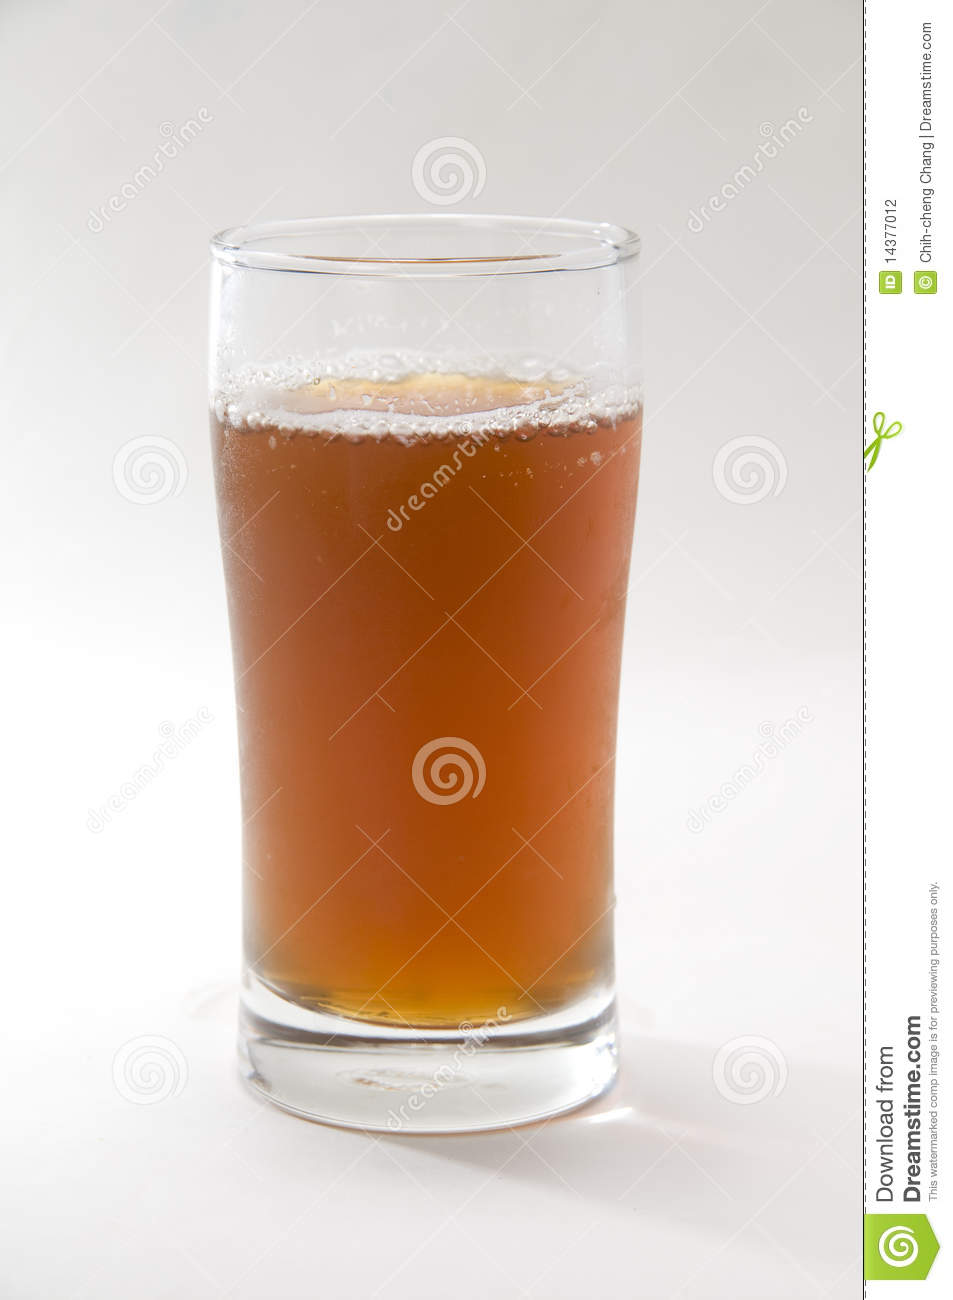 The Cool Drink Stock Photography - Image: 14377012